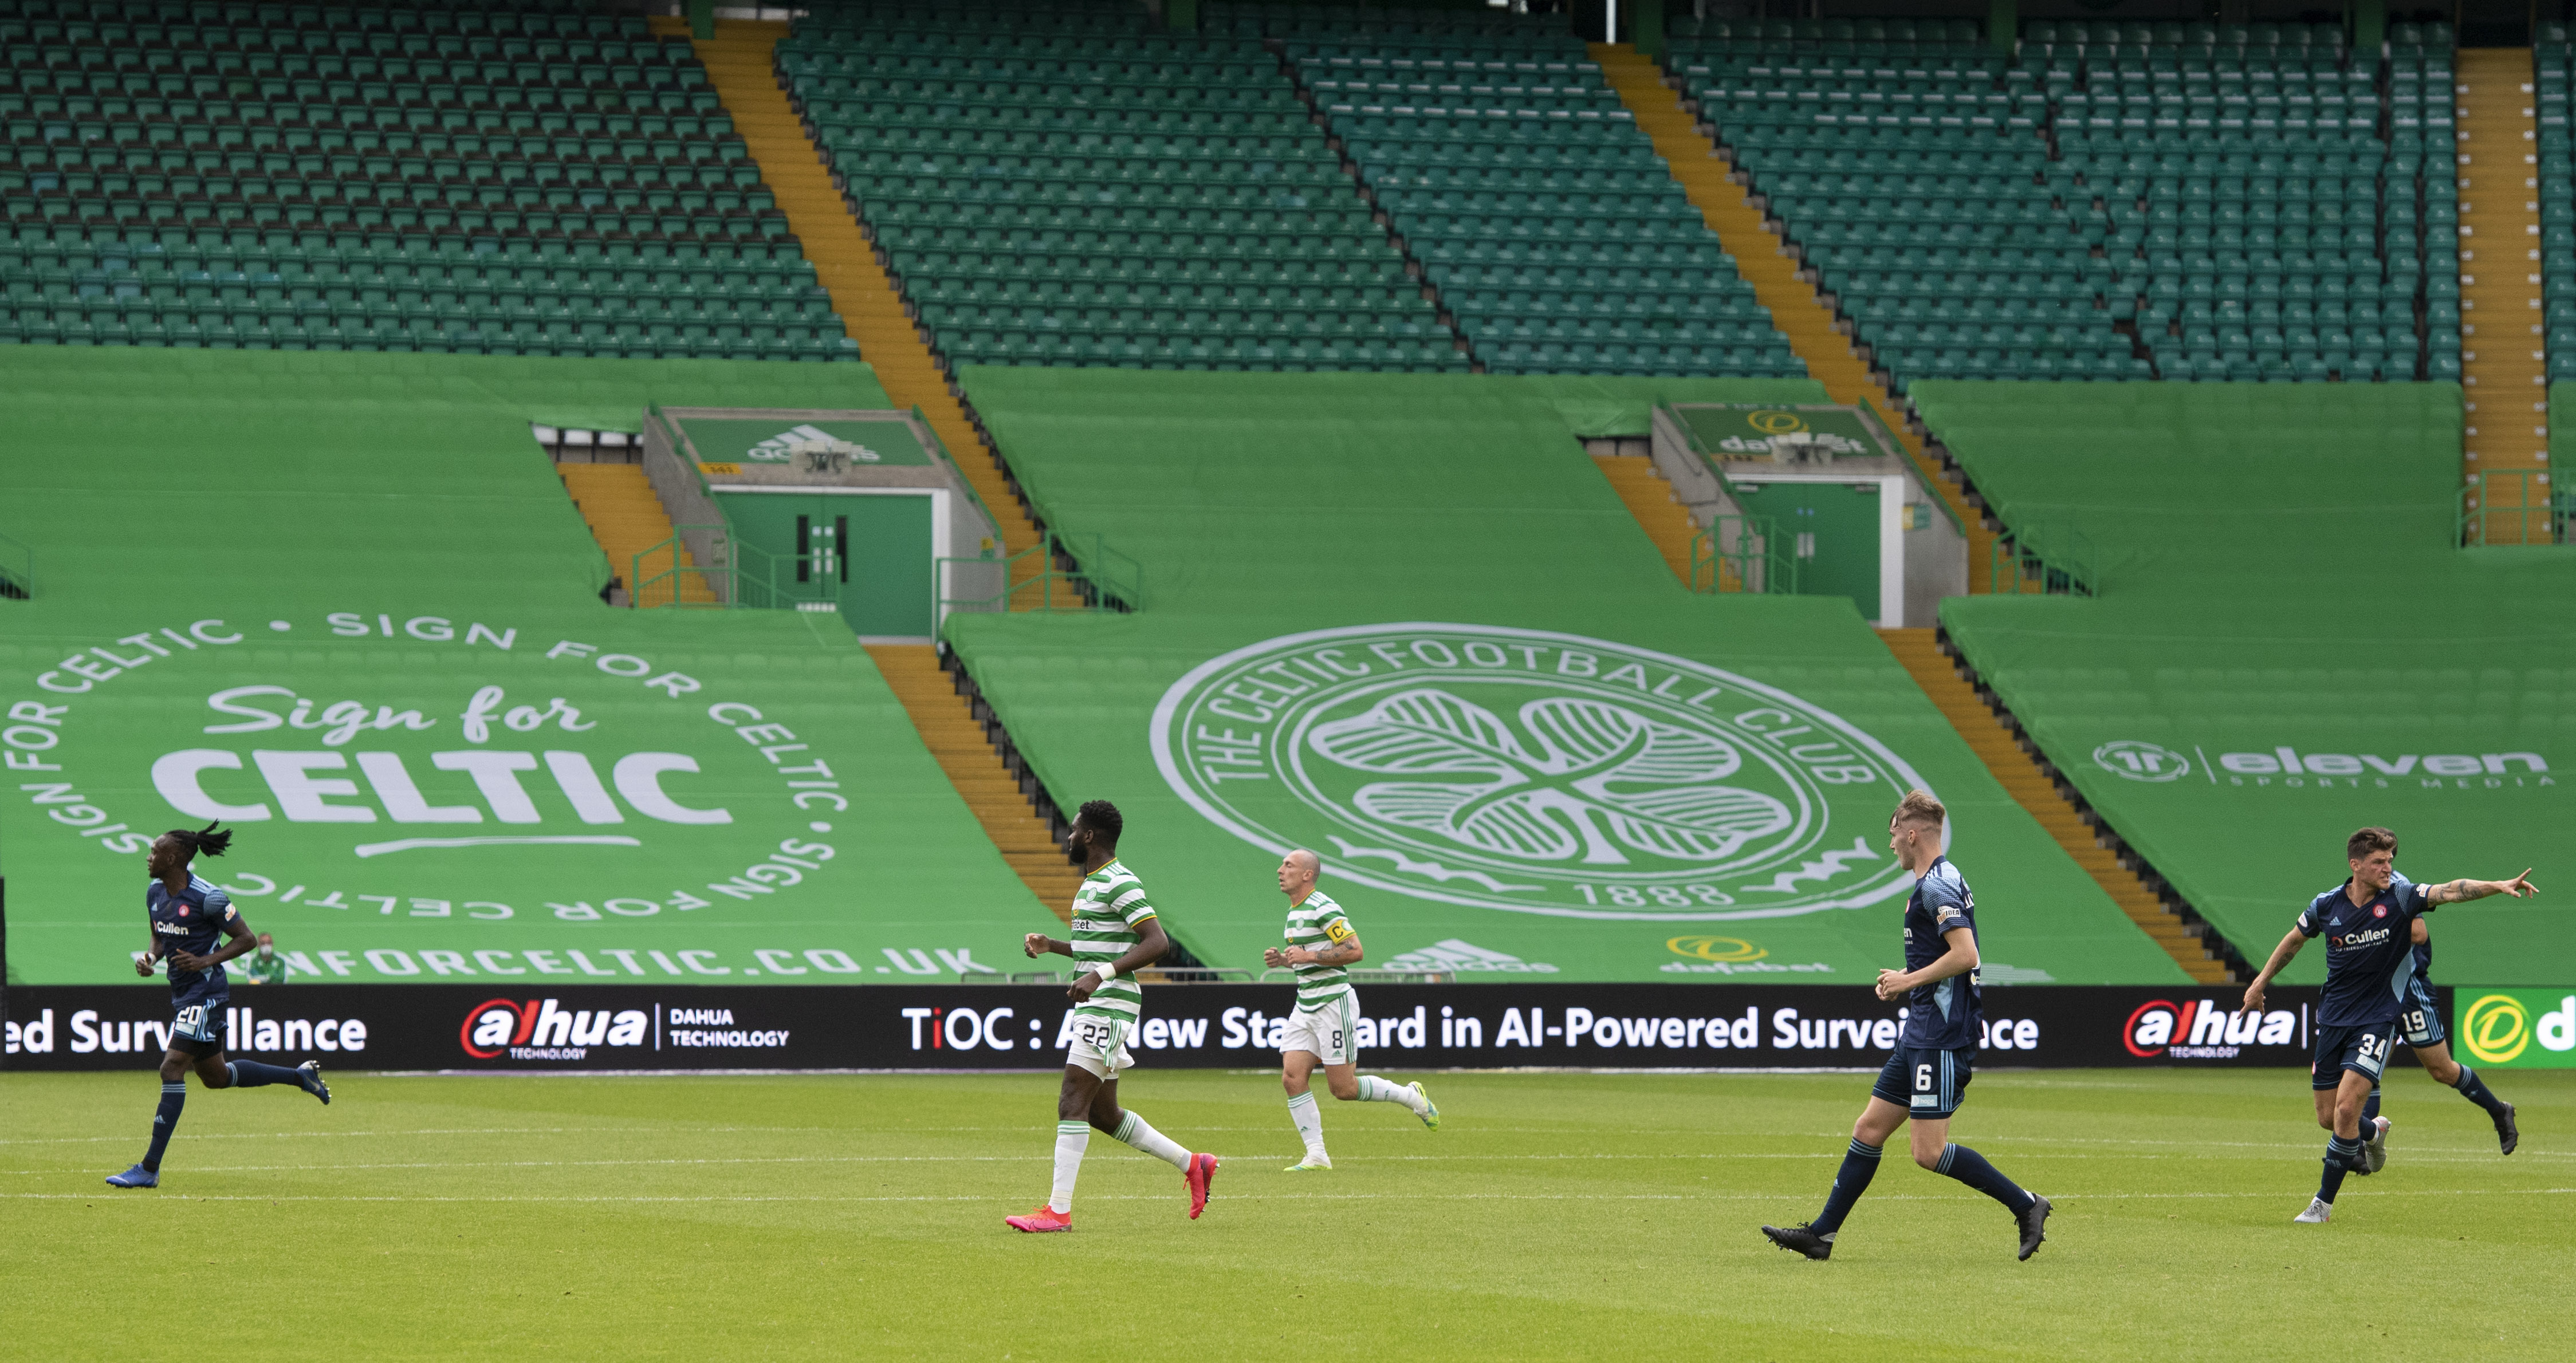 Celtic FC signs sponsorship deal with Dahua Technology